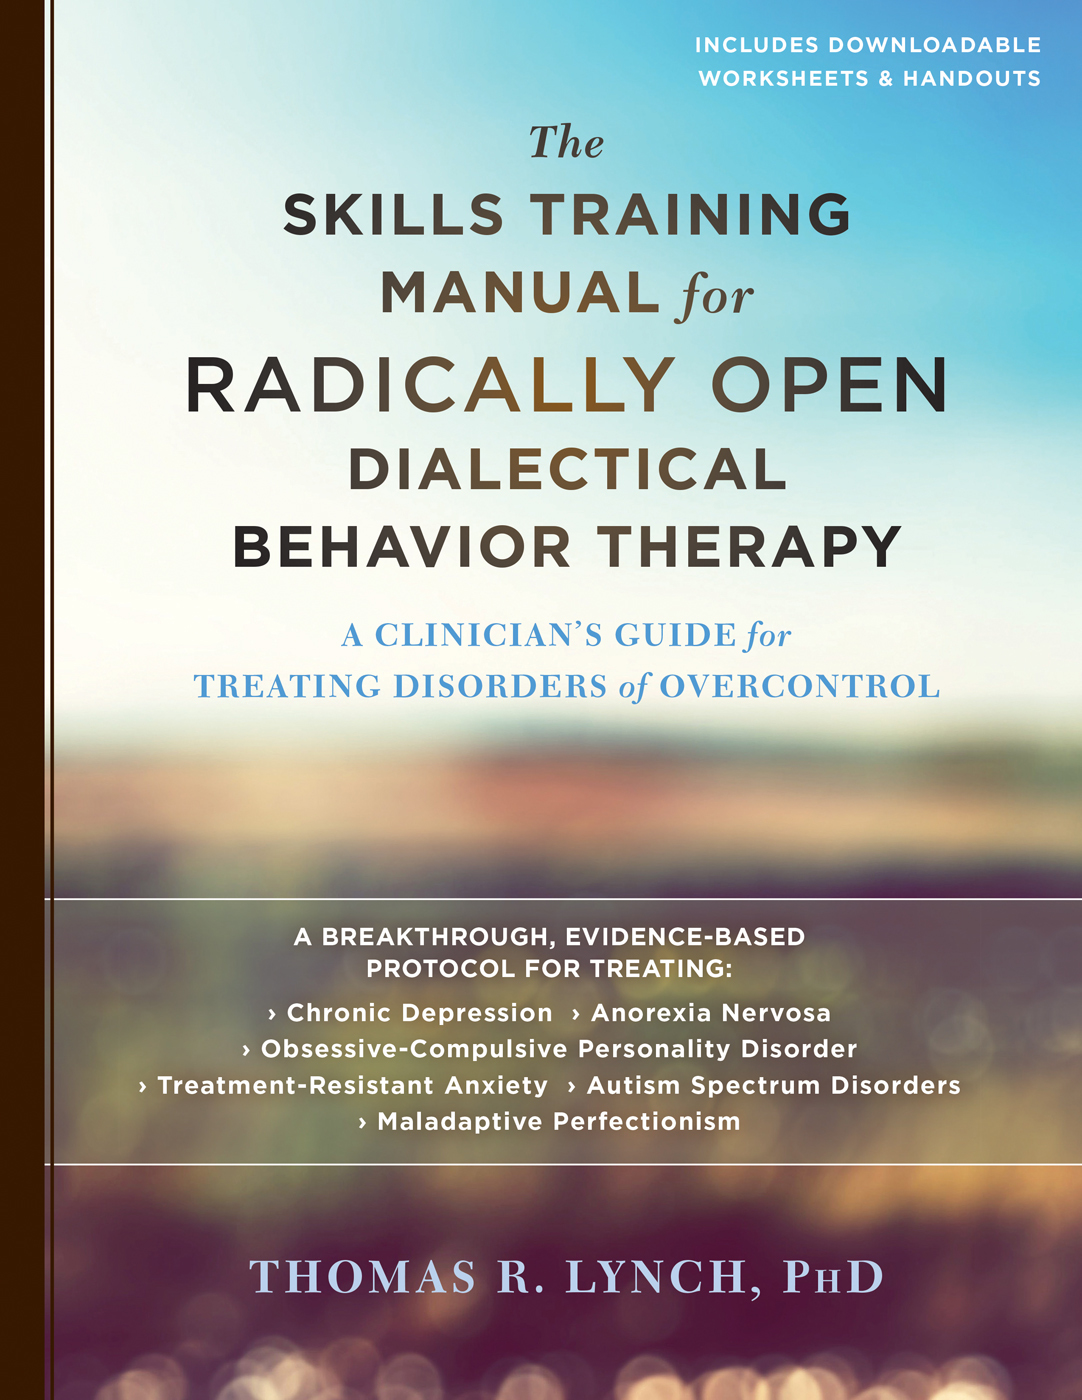 The Radically Open Dialectical Behavior Therapy Skills Training Manual: A Clinician's Guide for Treating Disorders of Overcontrol